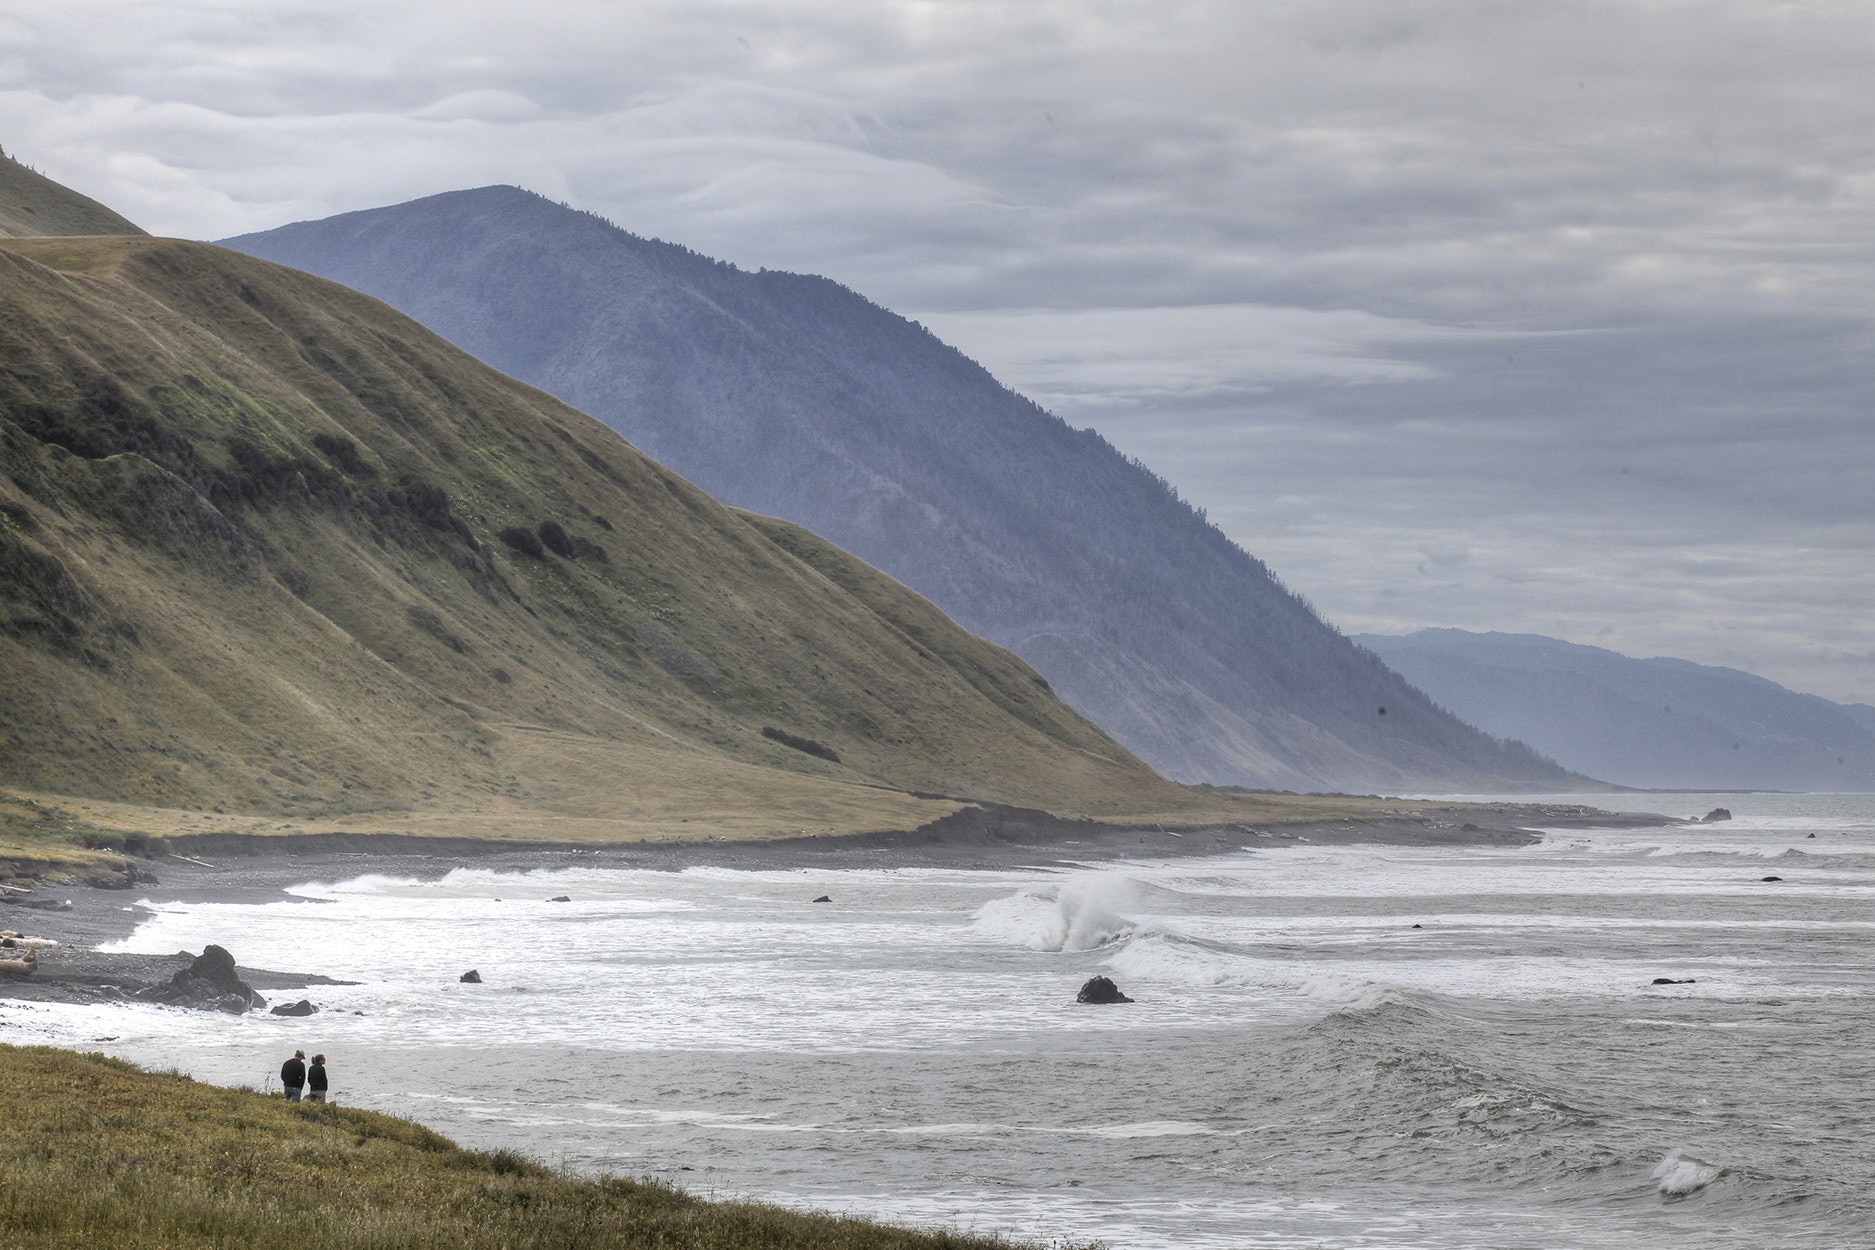 There's plenty of beach camping along the moody Lost Coast, but backpacking in this remote stretch of land is not for the faint of heart.